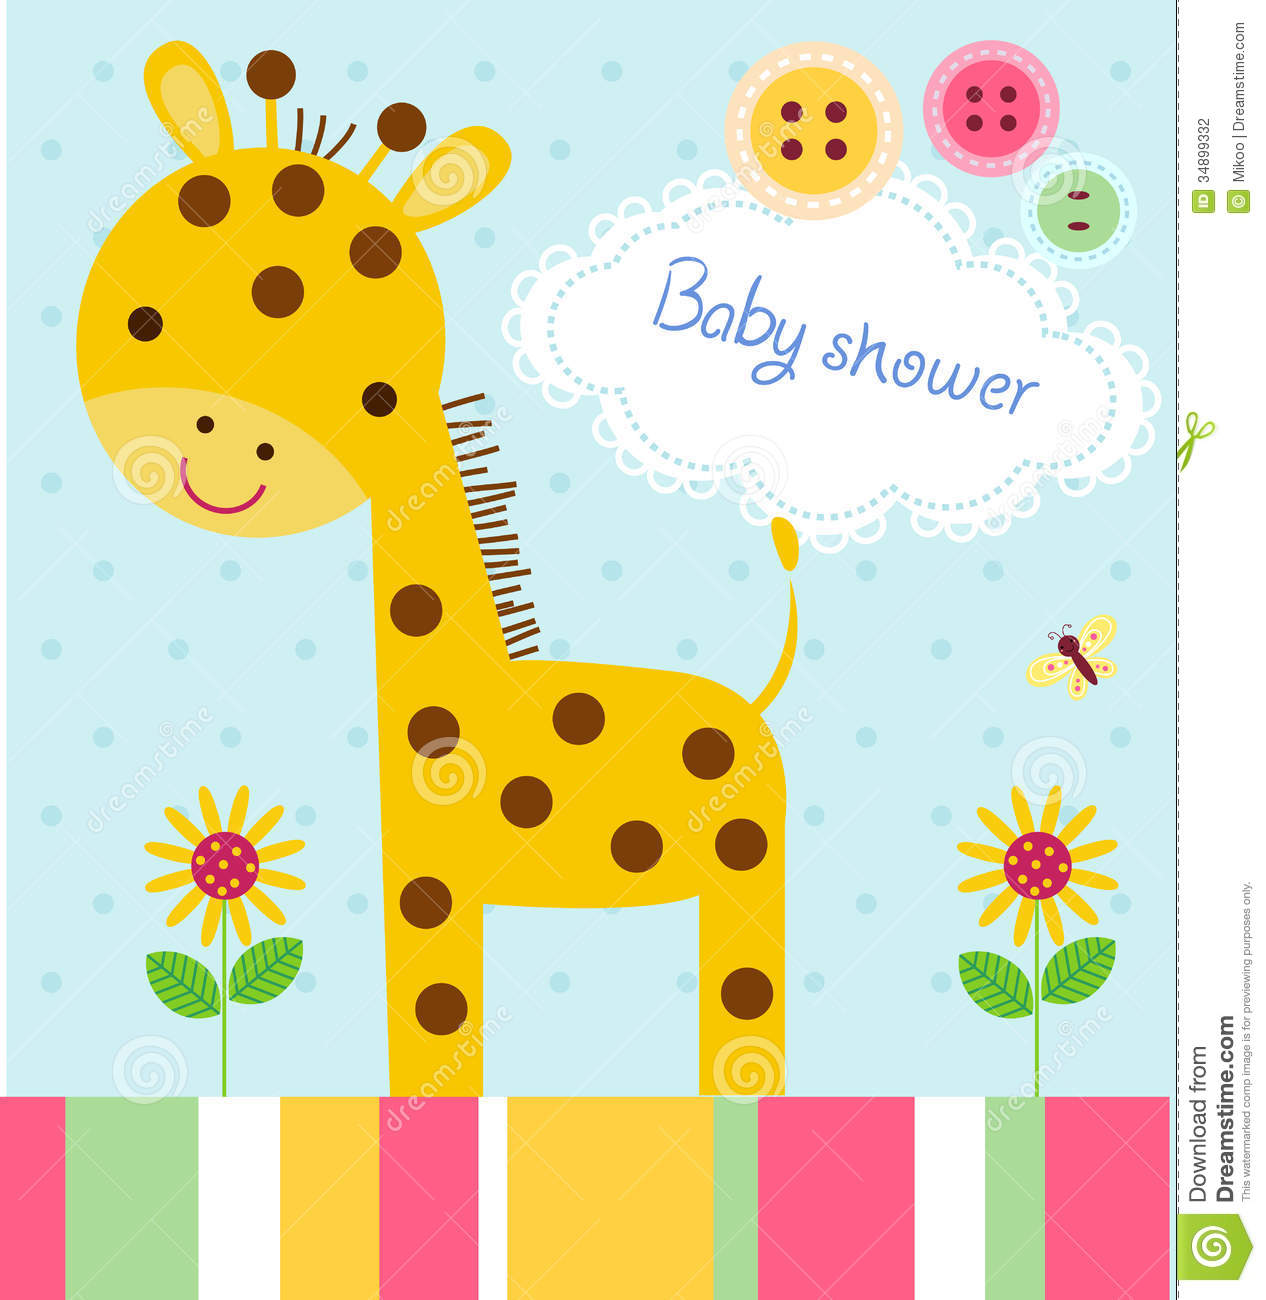 Baby Shower Card Stock Vector Illustration Of Greeting 34899332